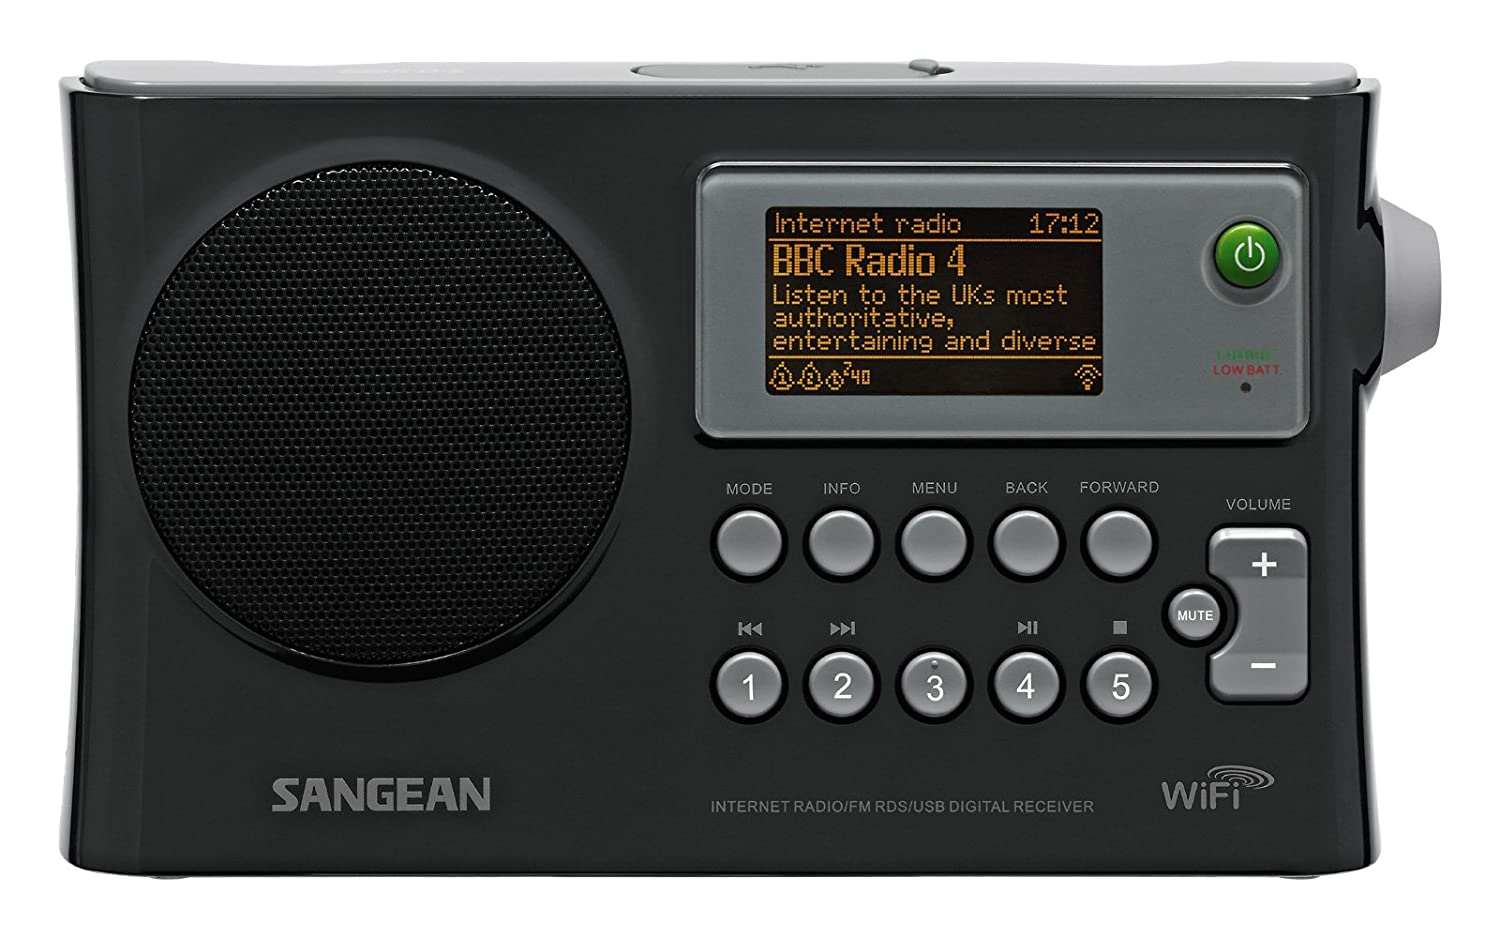 Sangean WFR-28 Rechargeable Portable WiFi Internet Radio with Color Display and Spotify